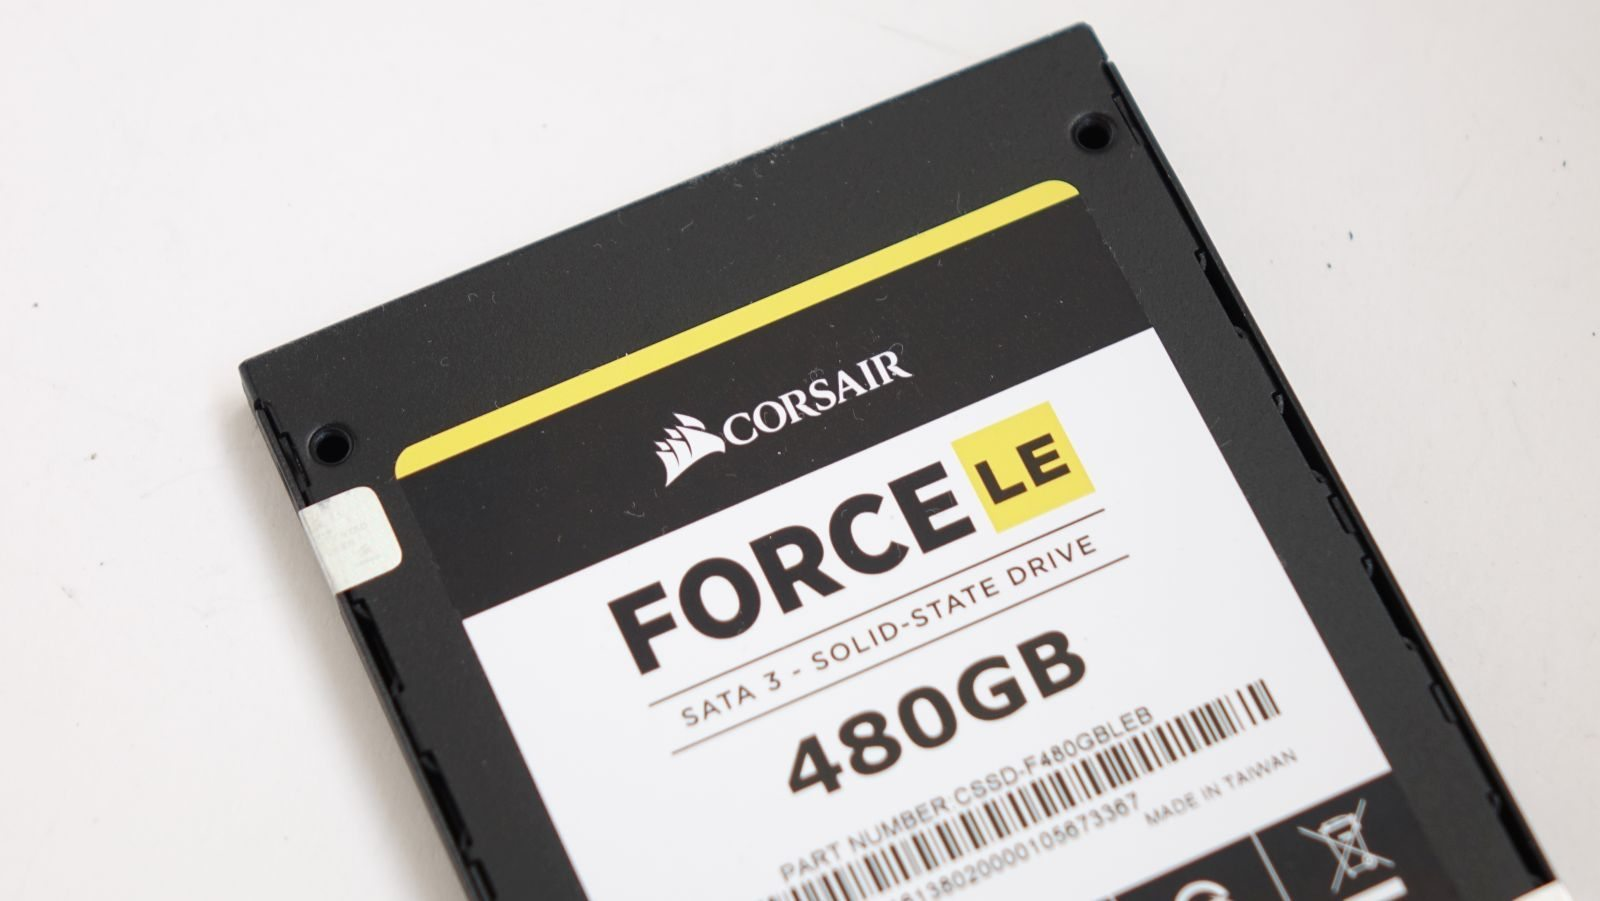 Corsair Force LE 480 Гбайт hero